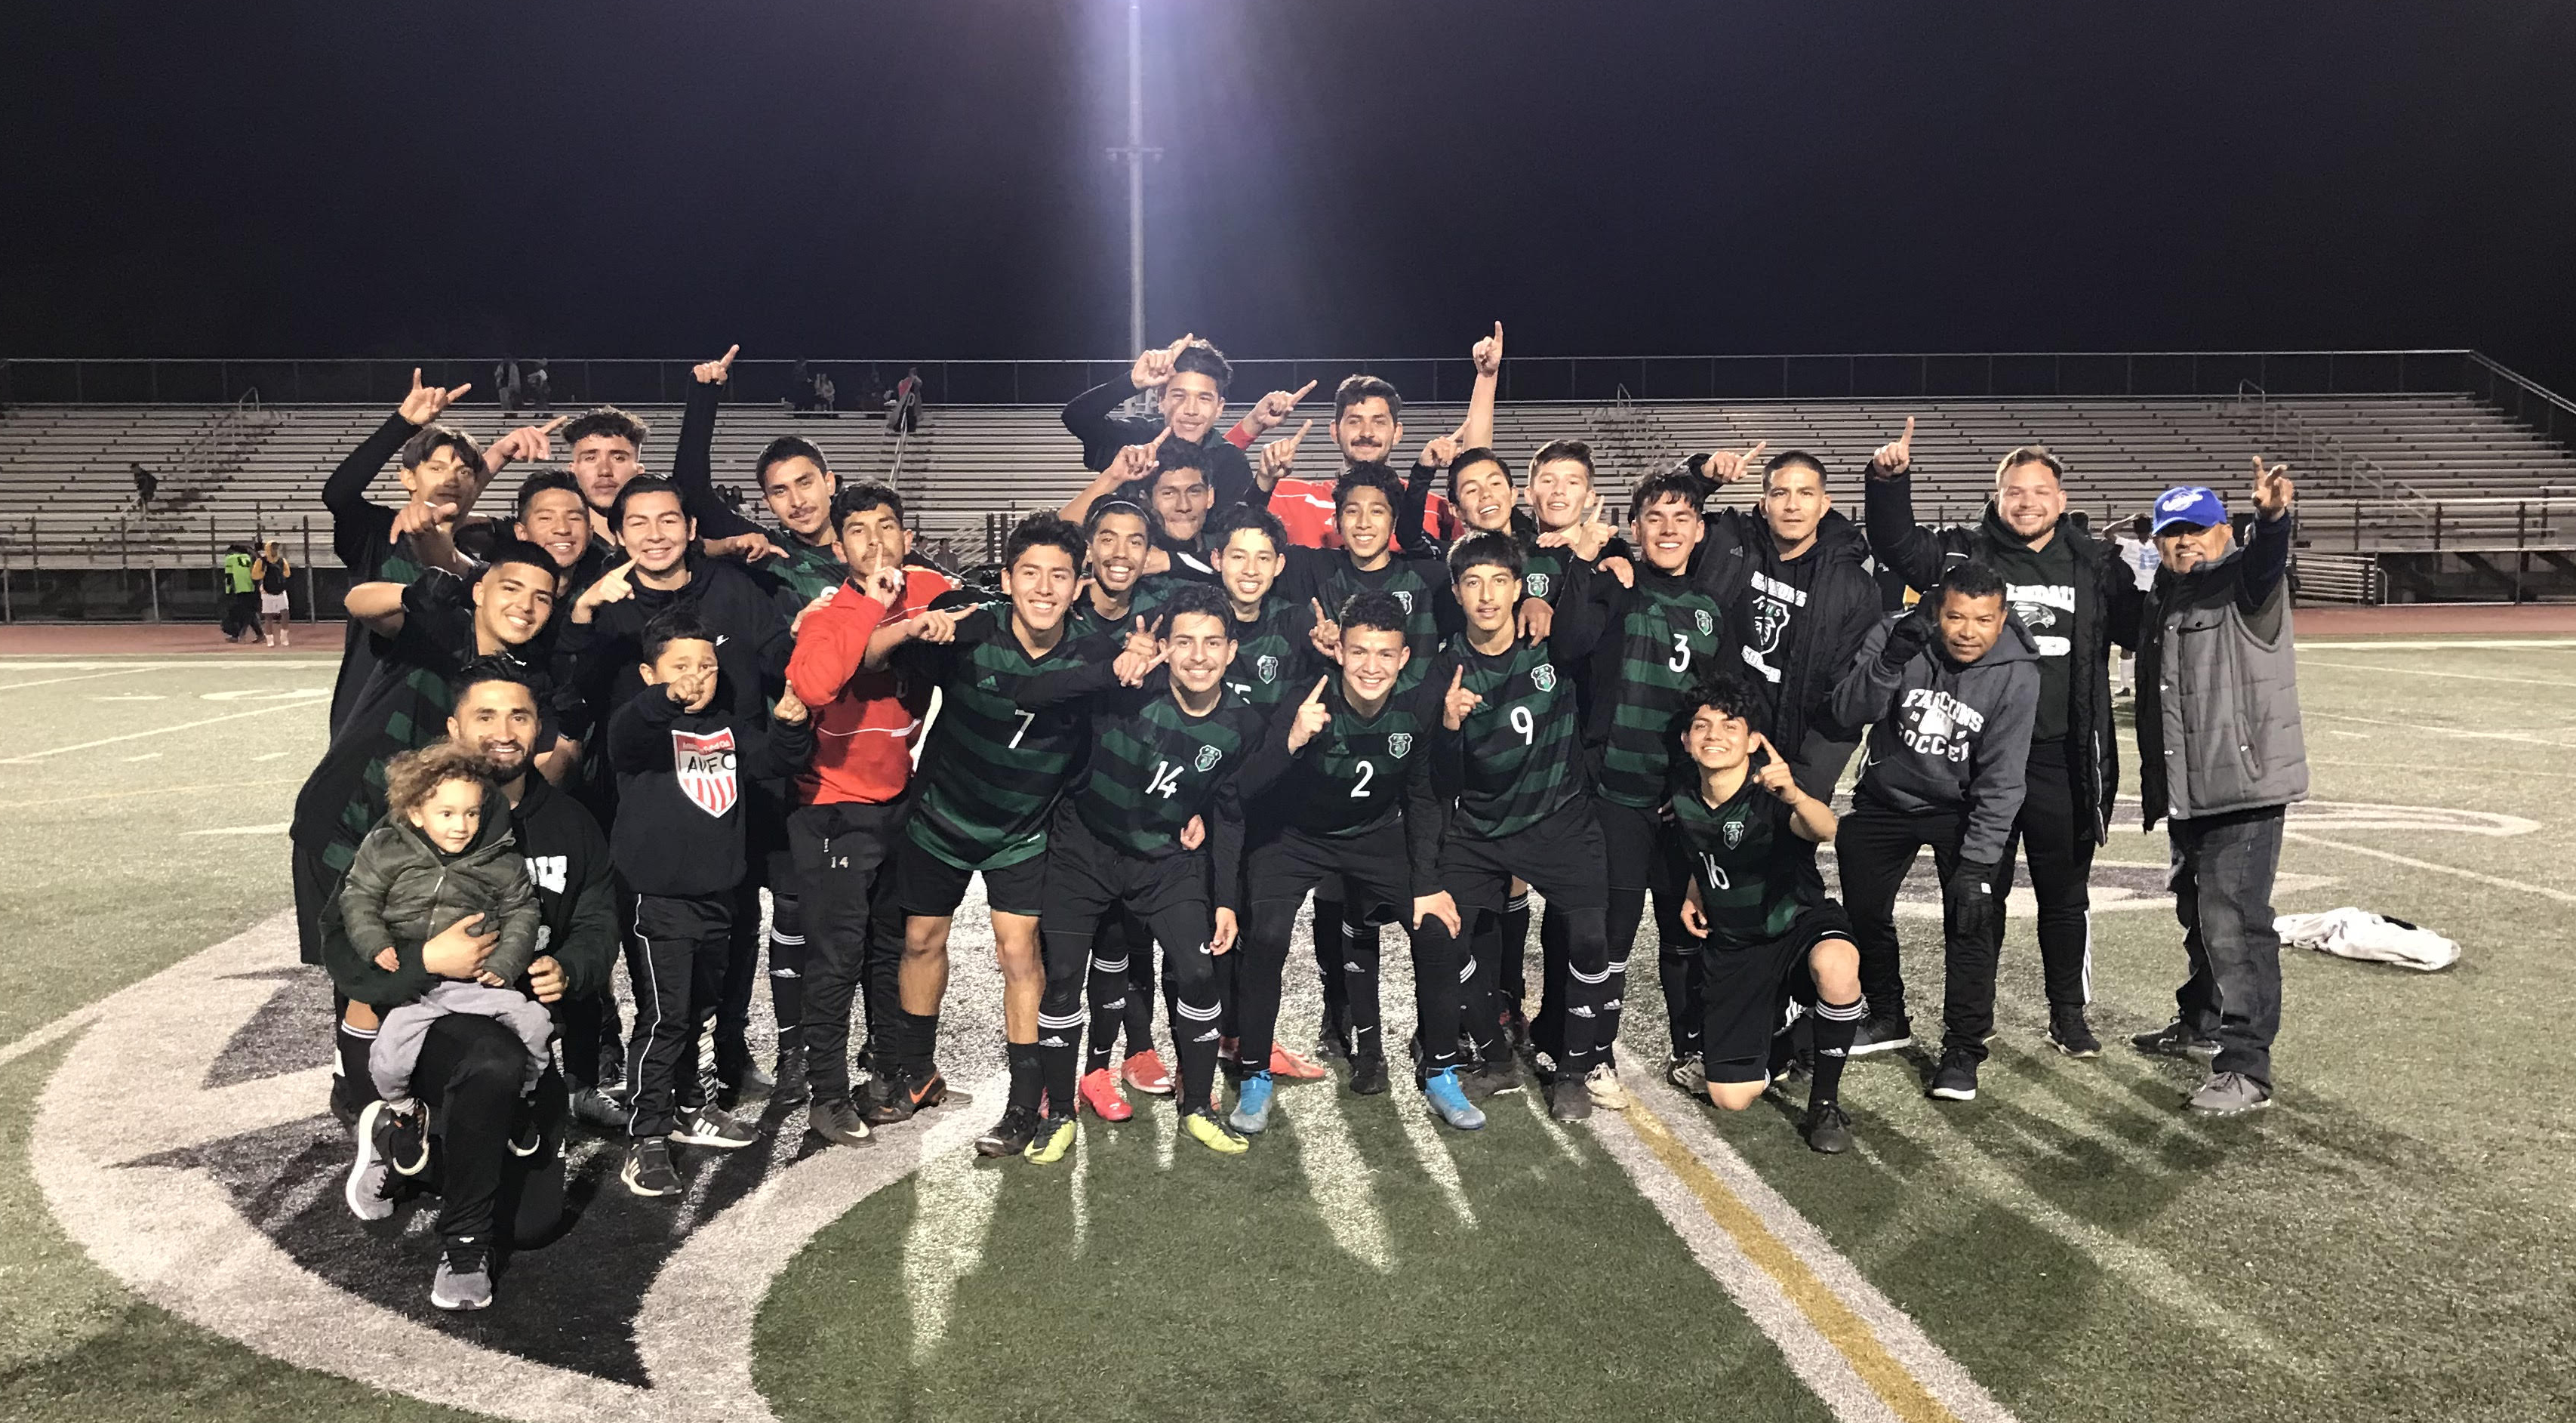 PHS Boys Varsity Soccer Team Takes 1ST Place In Golden League